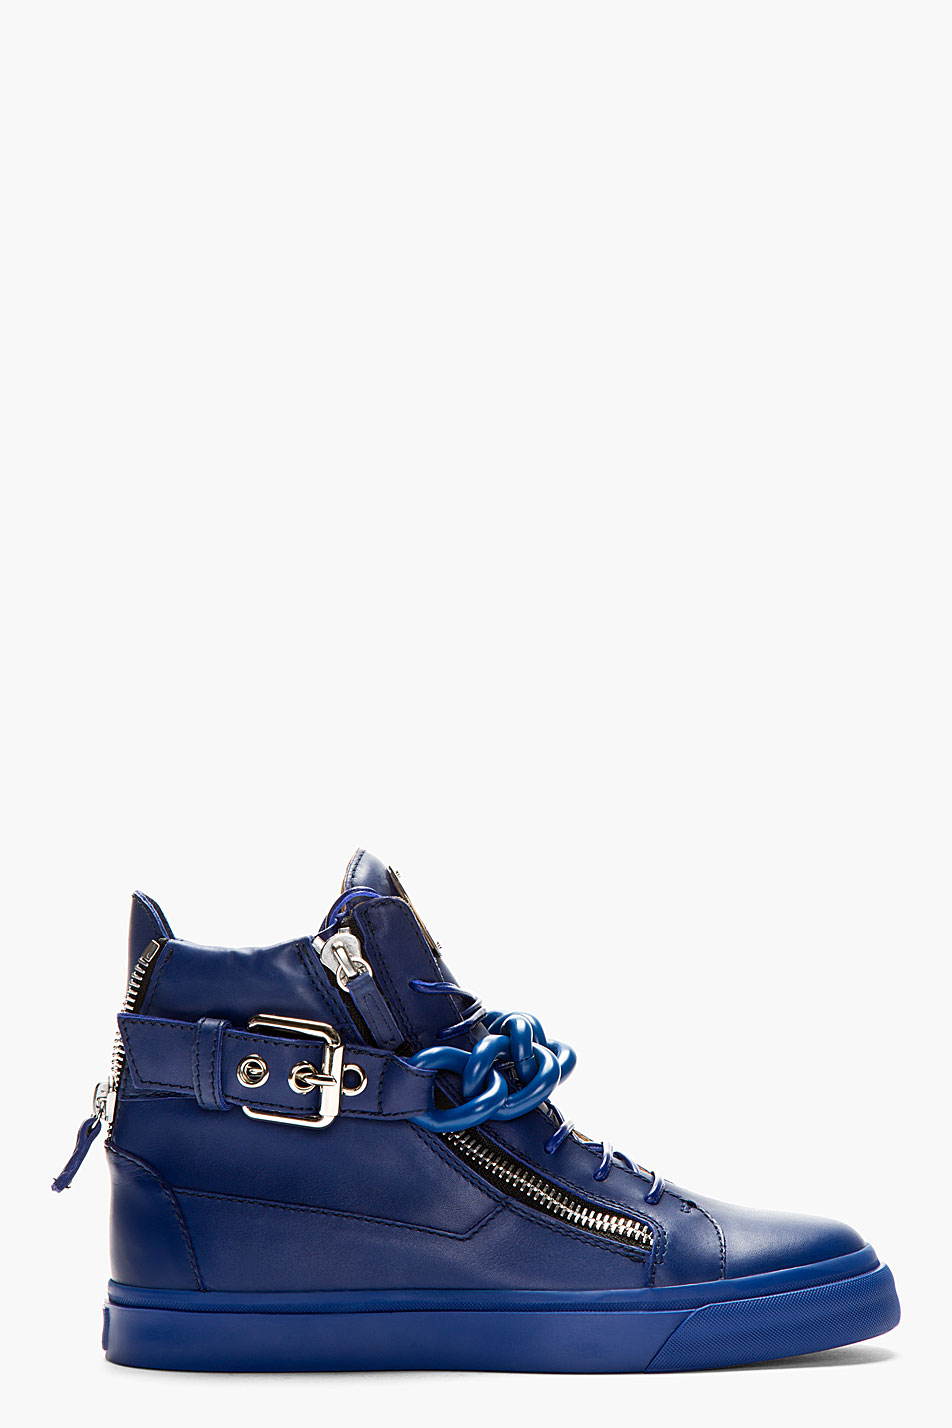 Giuseppe Zanotti Chain Detail Hi-Top Sneakers in Blue for ... Giuseppe Zanotti Sneakers Blue